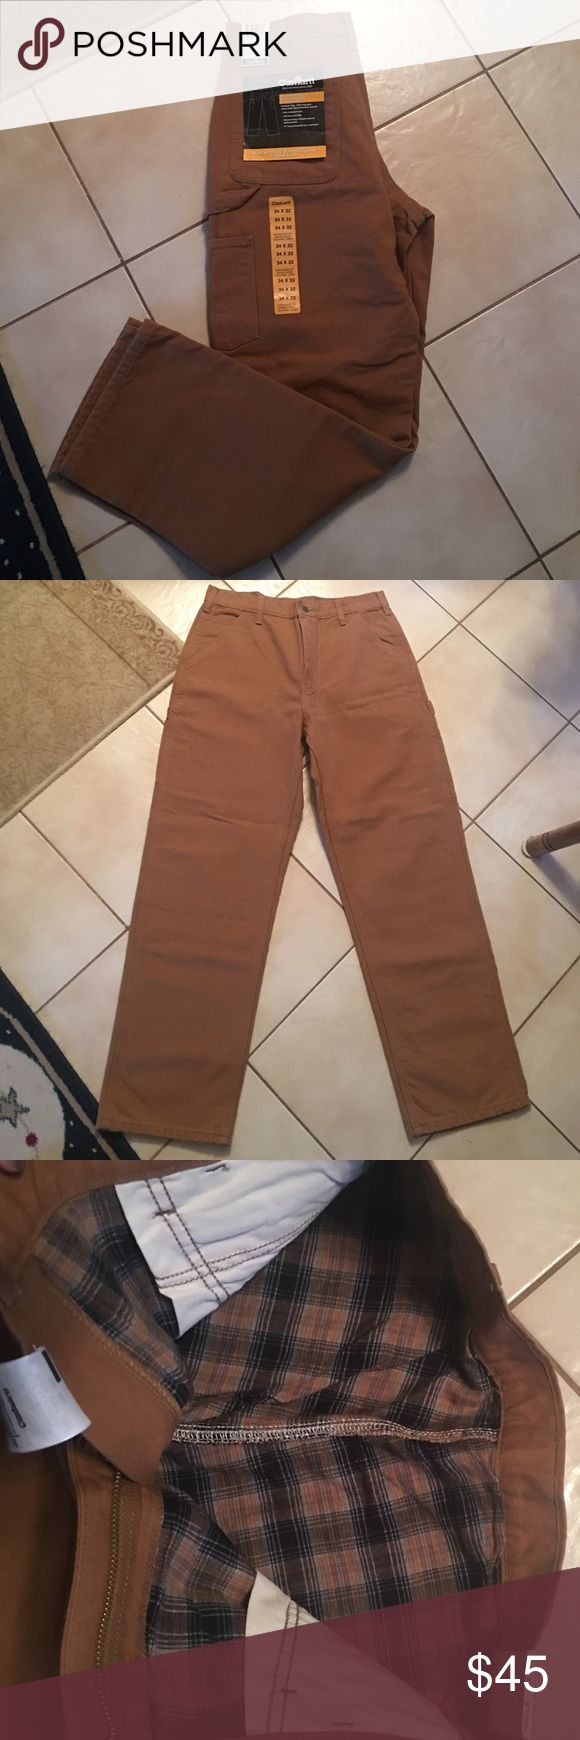 BRAND NEW Carhartt Men's Pants Brand new with tags! Mens carhartt work pants, size 34x32! They are flannel lined! With tags still on! WASHED DUCK WORK DUNGAREE-Flannel Lined Carhartt Pants Cargo